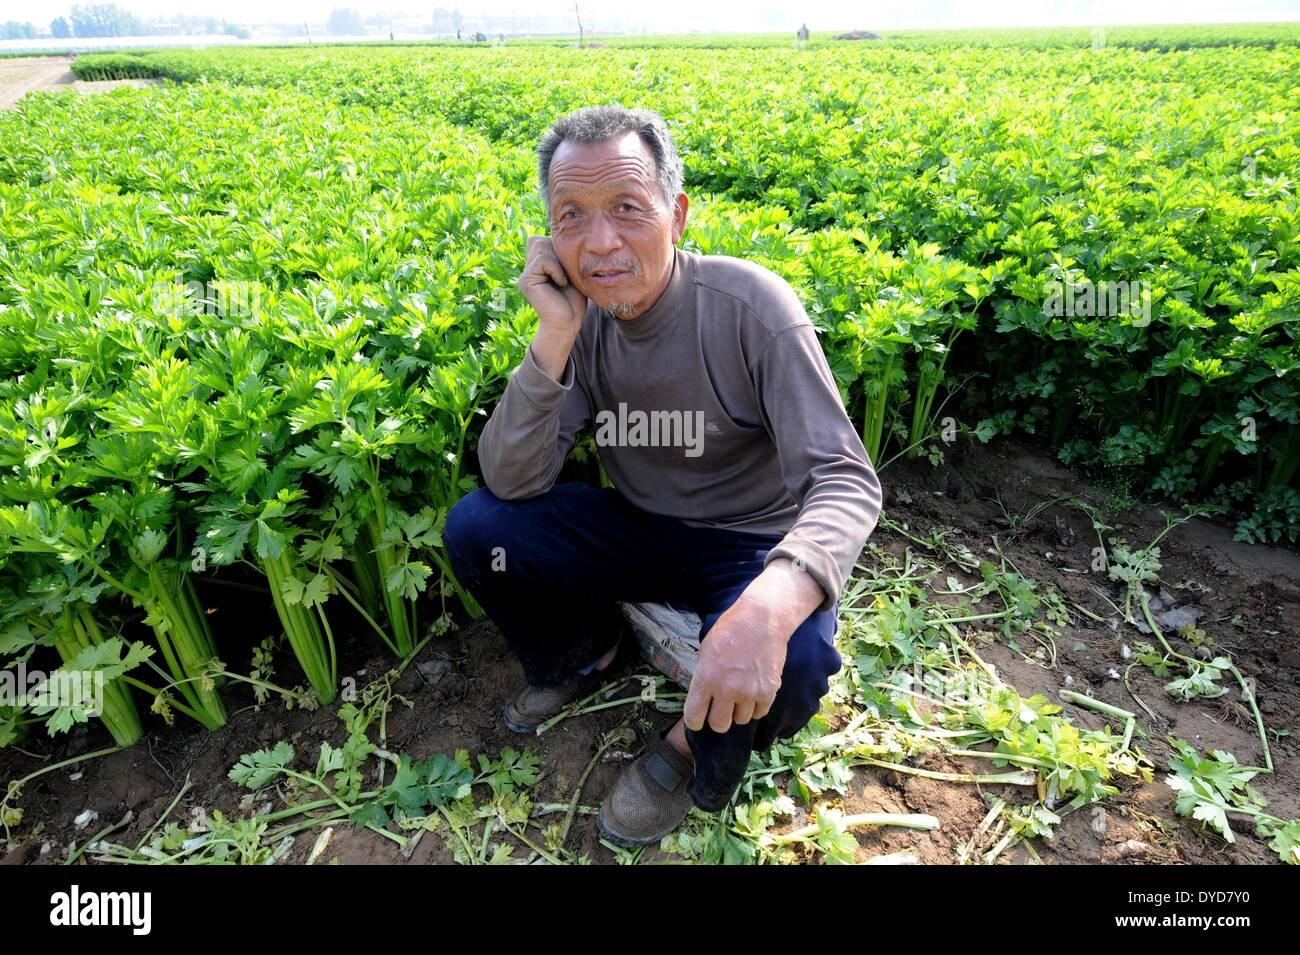 Zhongmou, China's Henan Province. 14th Apr, 2014. Farmer Du Jinxing sits in the field as he worries about the sale of celeries in Xingzhuang Village of Zhongmou County, central China's Henan Province, April 14, 2014. The harvest of celeries in the country failed to bring a handsome income to local farmers who lack sale experience and have to sell celeries at an extremely low price. © Zhu Xiang/Xinhua/Alamy Live News - Stock Image